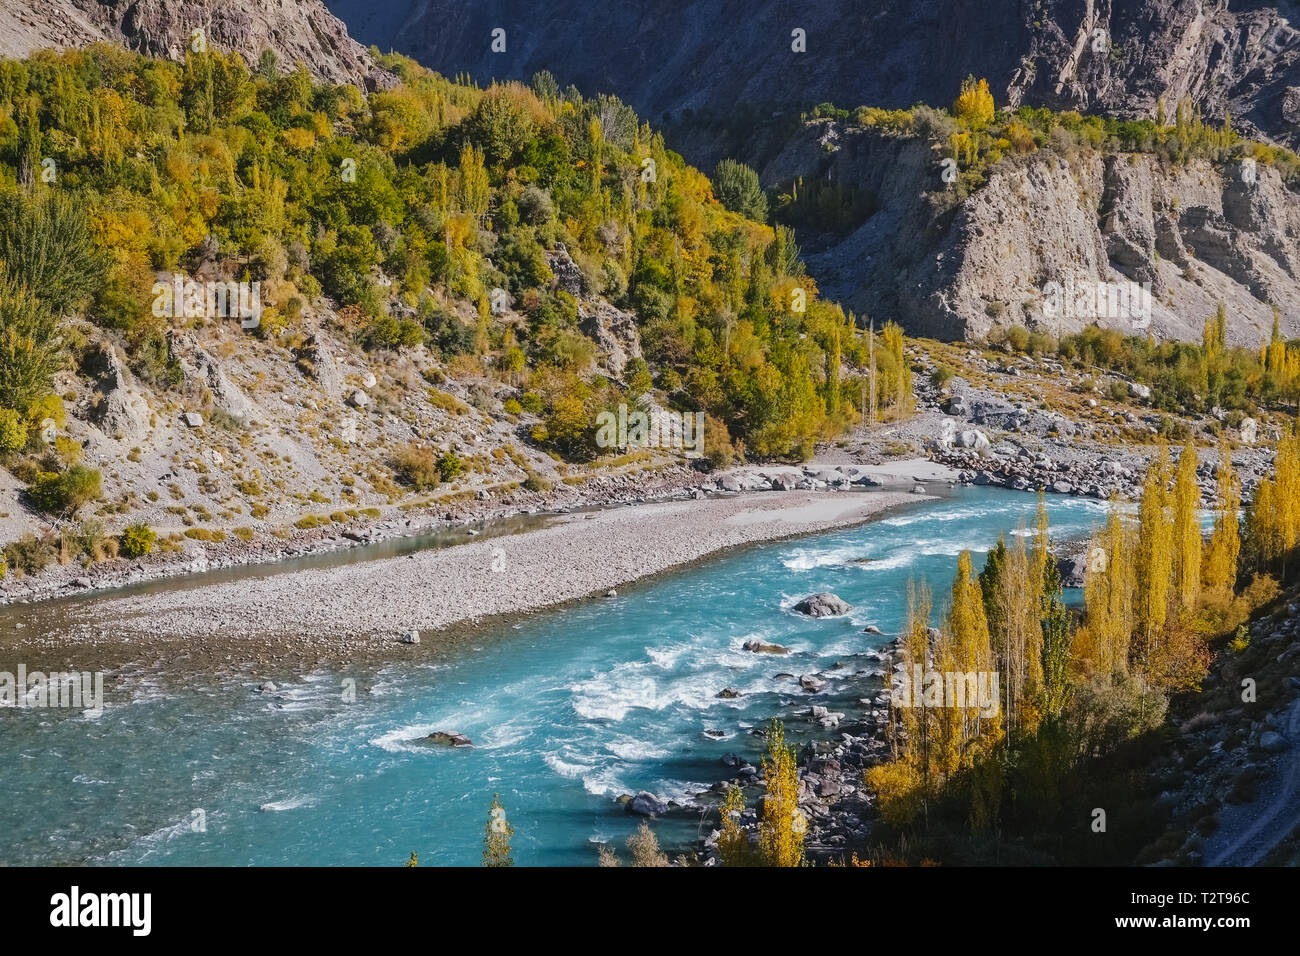 Turquoise Ghizer river flowing through forest in Gahkuch, surrounded by mountains. Gilgit Baltistan, Pakistan. - Stock Image